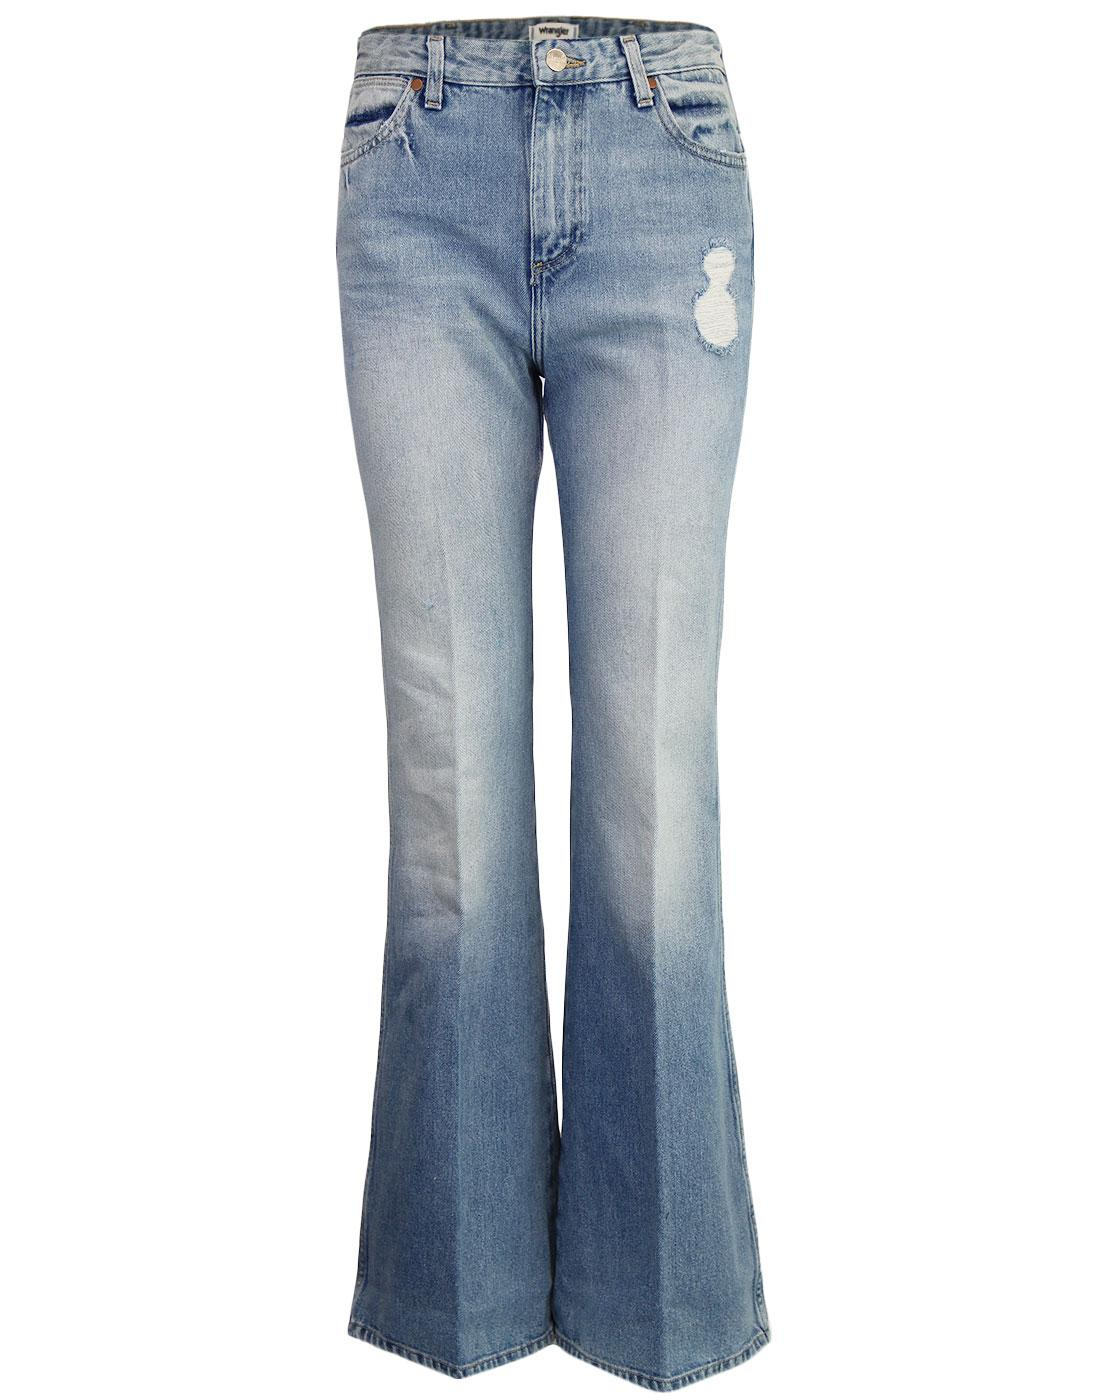 WRANGLER 1970s Denim Retro Star Flares (Glaston)